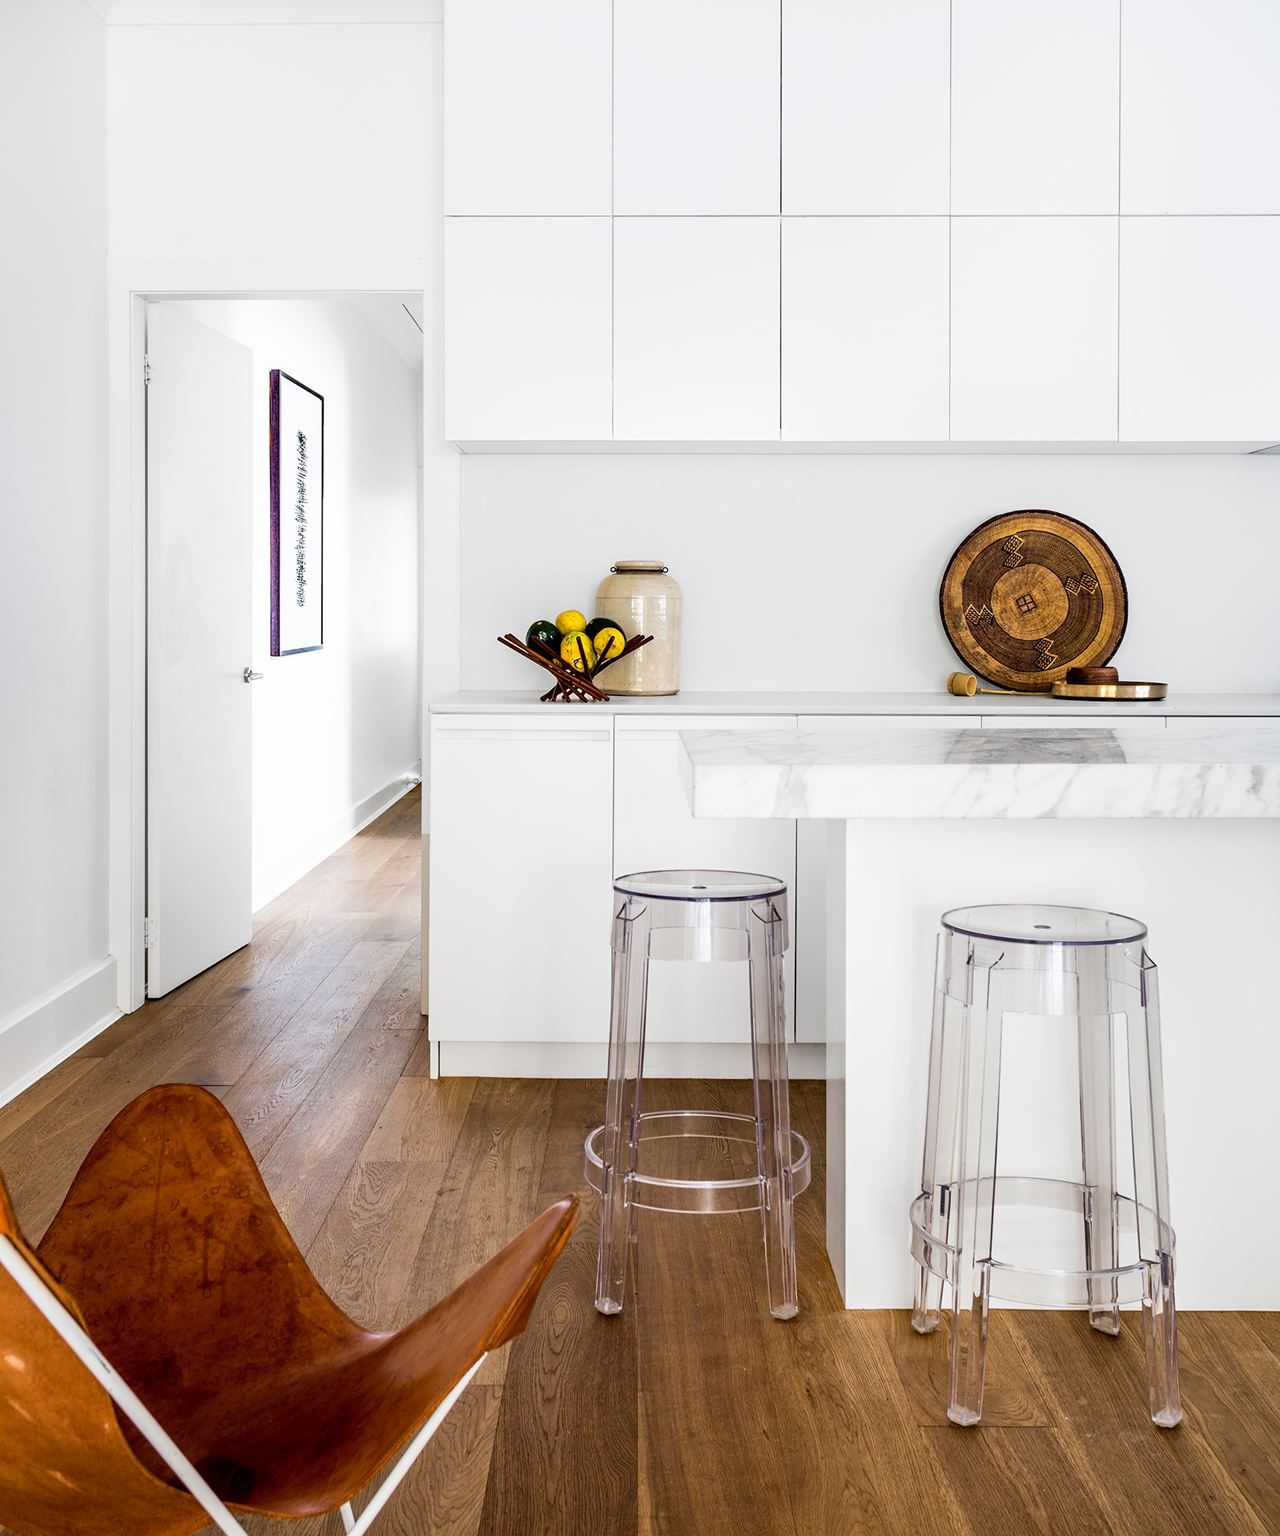 Gallery Romy Alwill S Budget Conscious Renovation